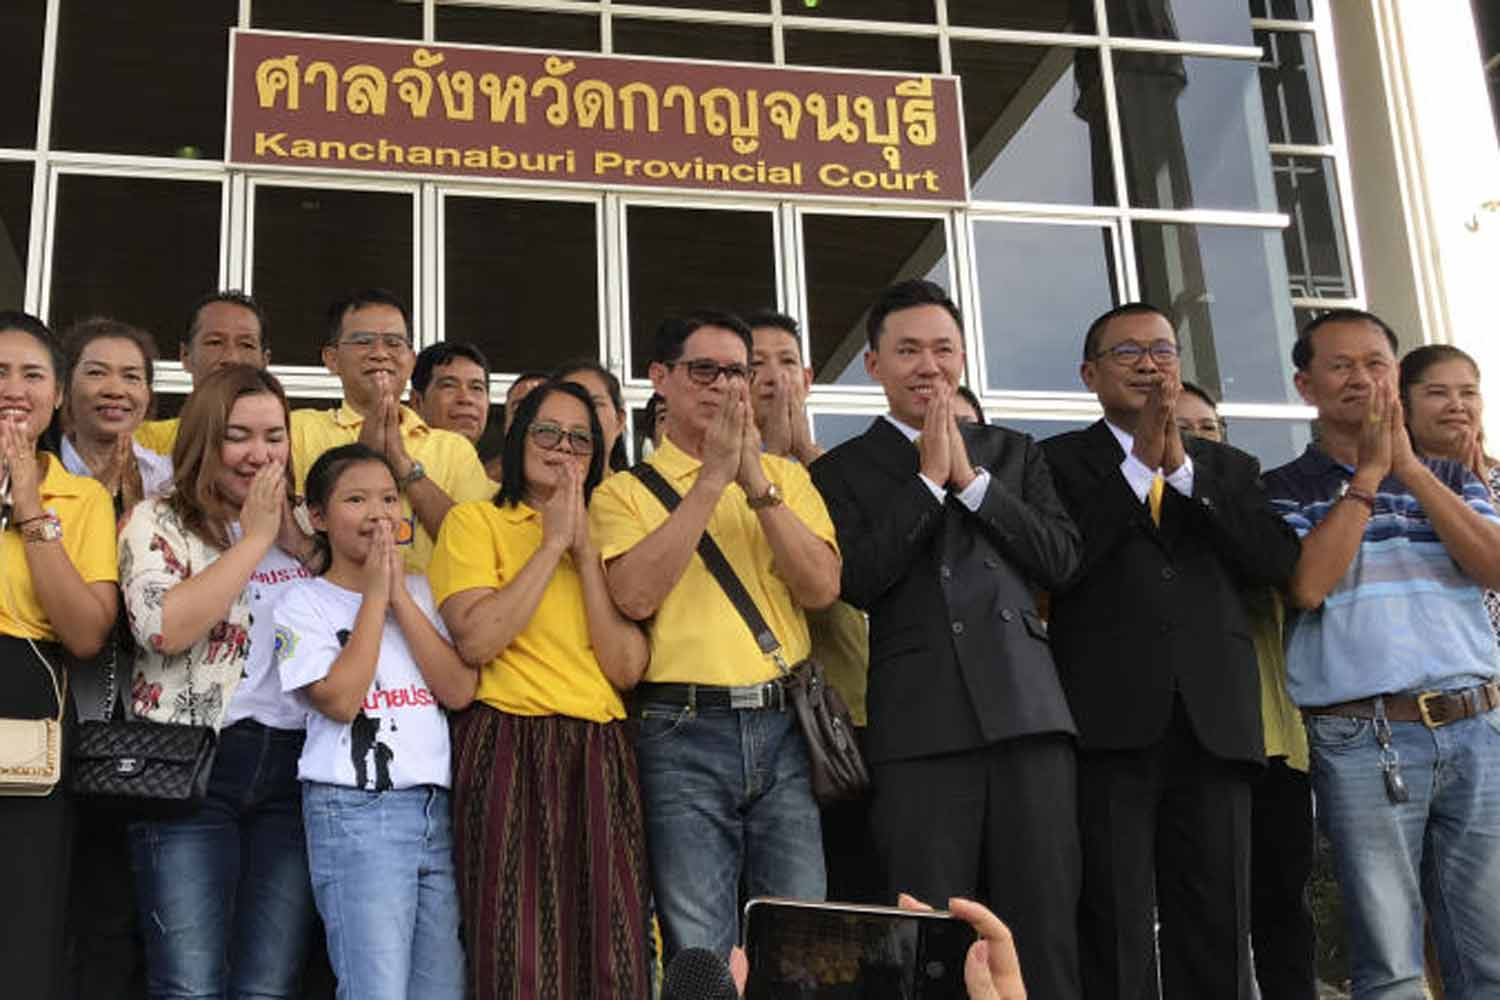 Retired Pol Lt Charoon Wimool, with shoulder bag, and supporters express their gratitude after the Kanchanaburi Court ruled in his favour on June 4, confirming his ownership of lottery tickets that won prizes totalling 30 million baht. (Photo by Piyarach Chongcharoen)